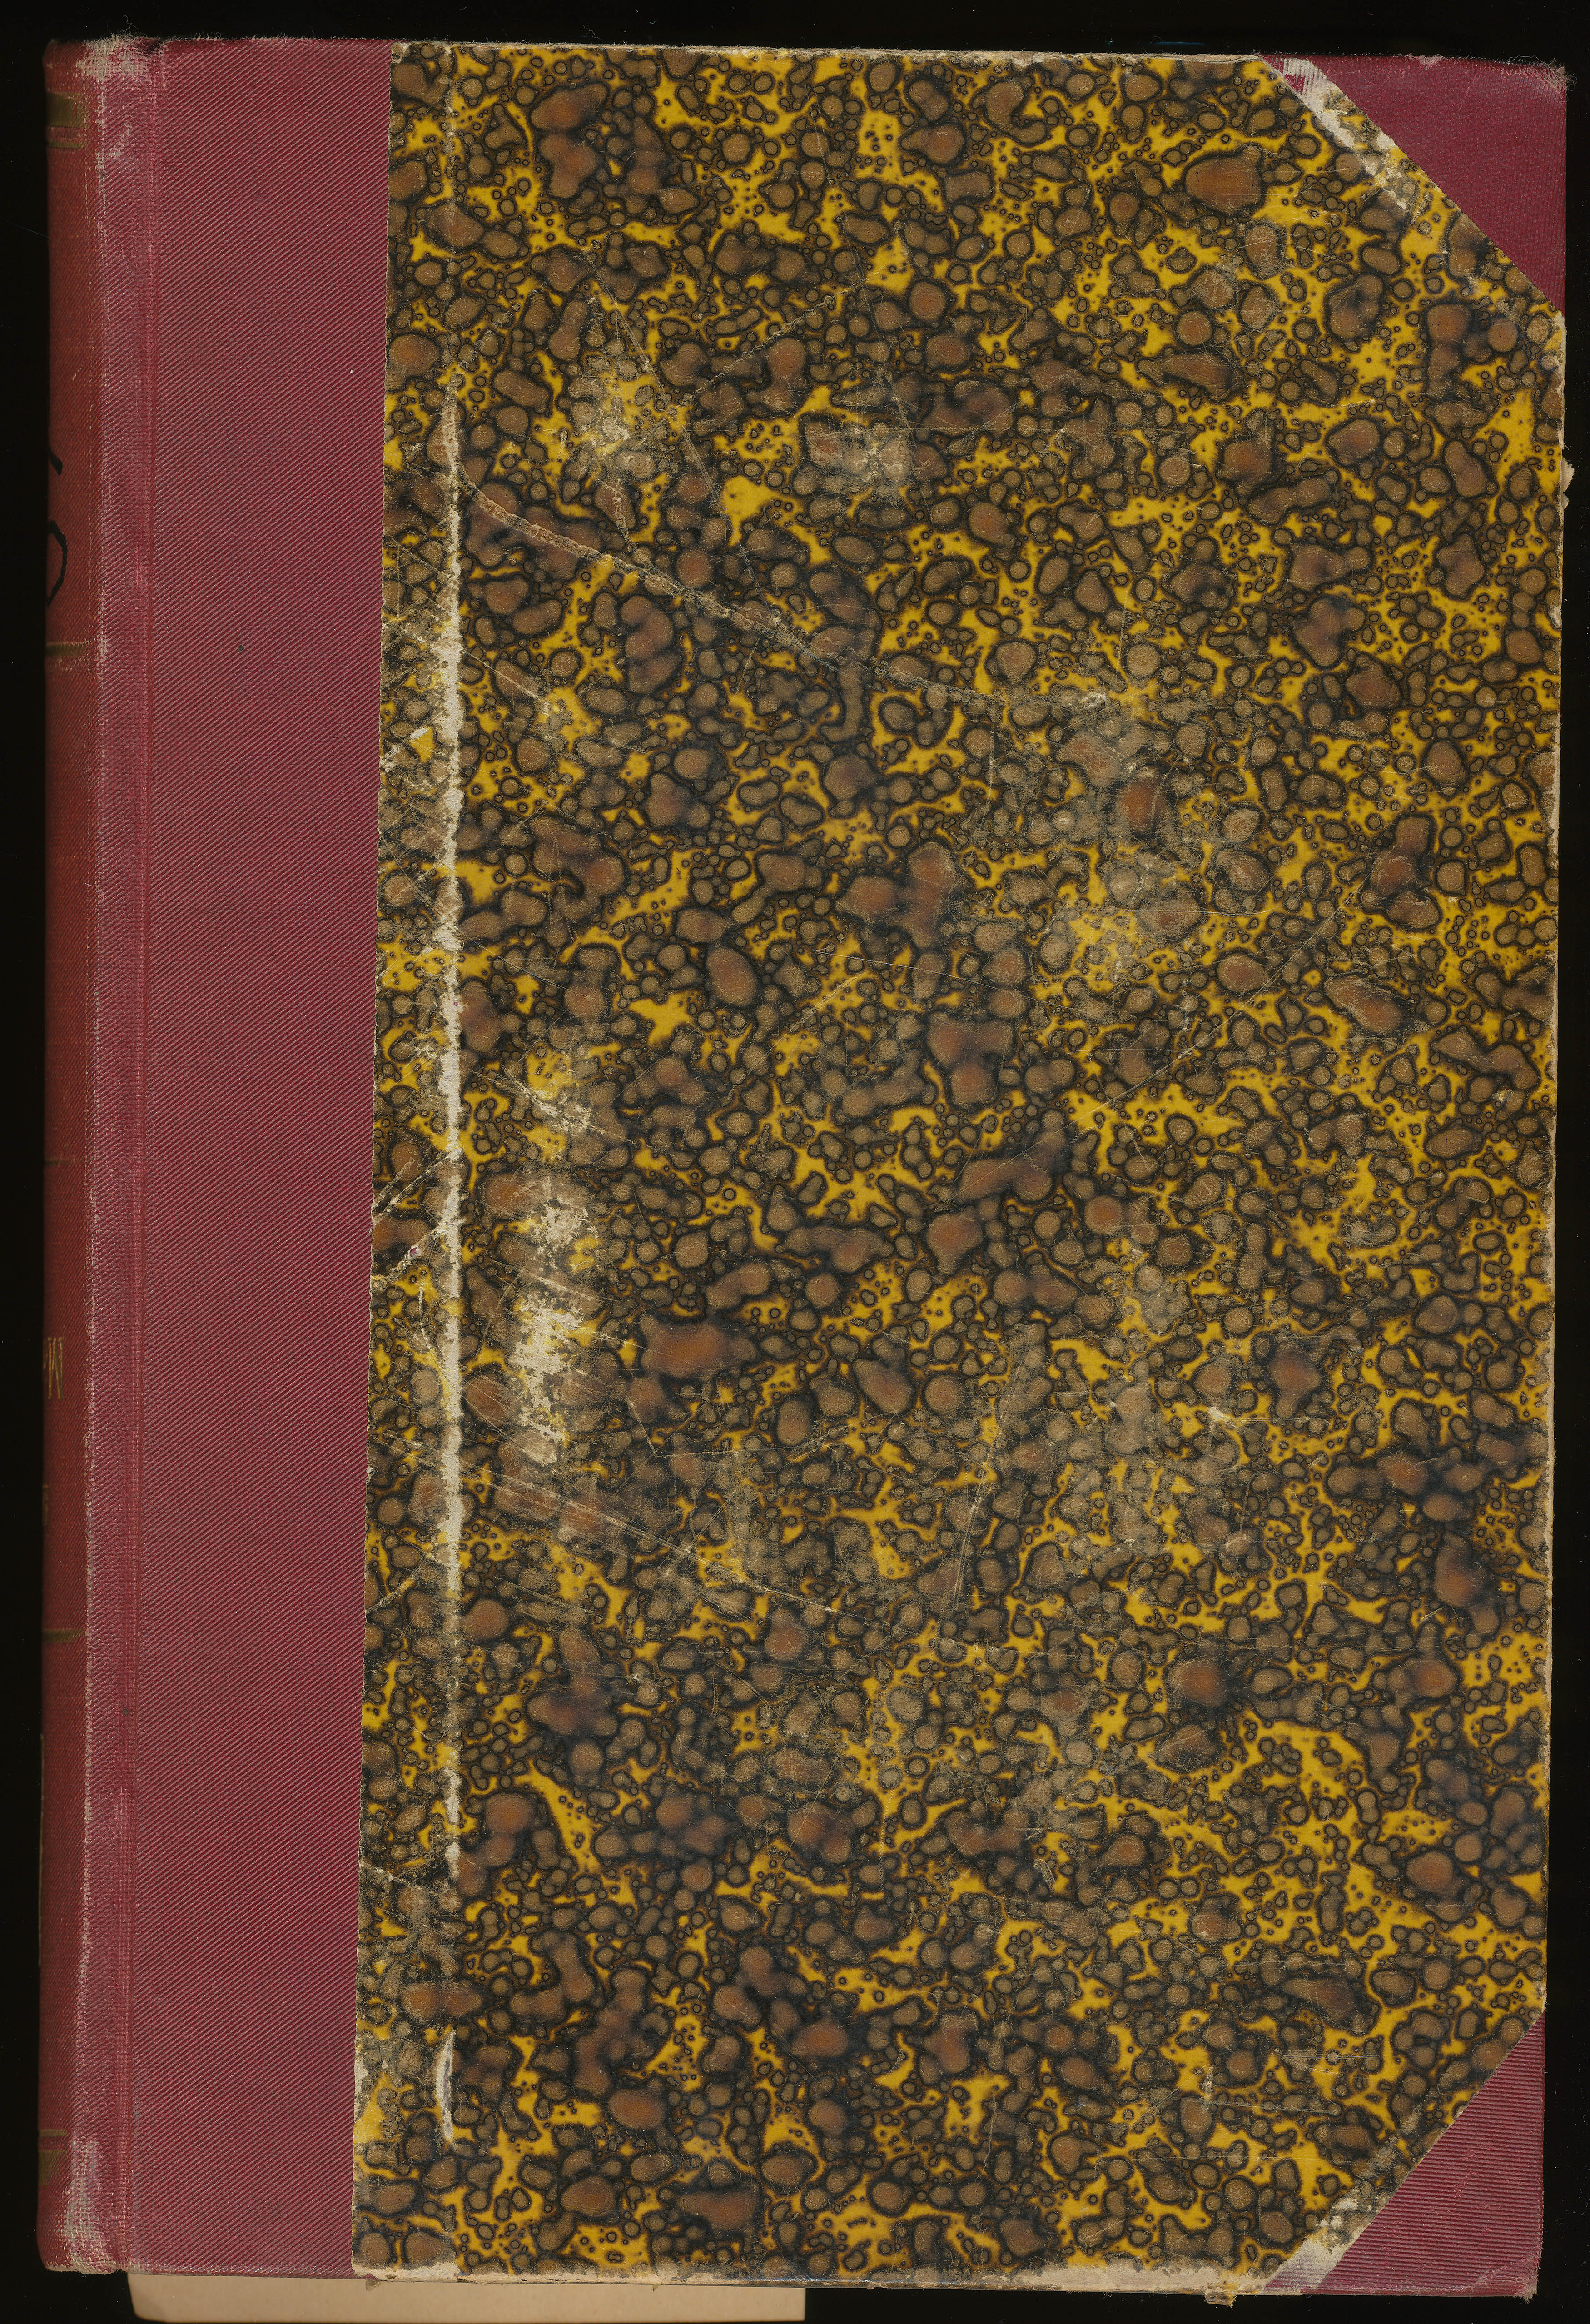 Creased Book Cover Texture : Five hq vintage book paper and leather cover texture